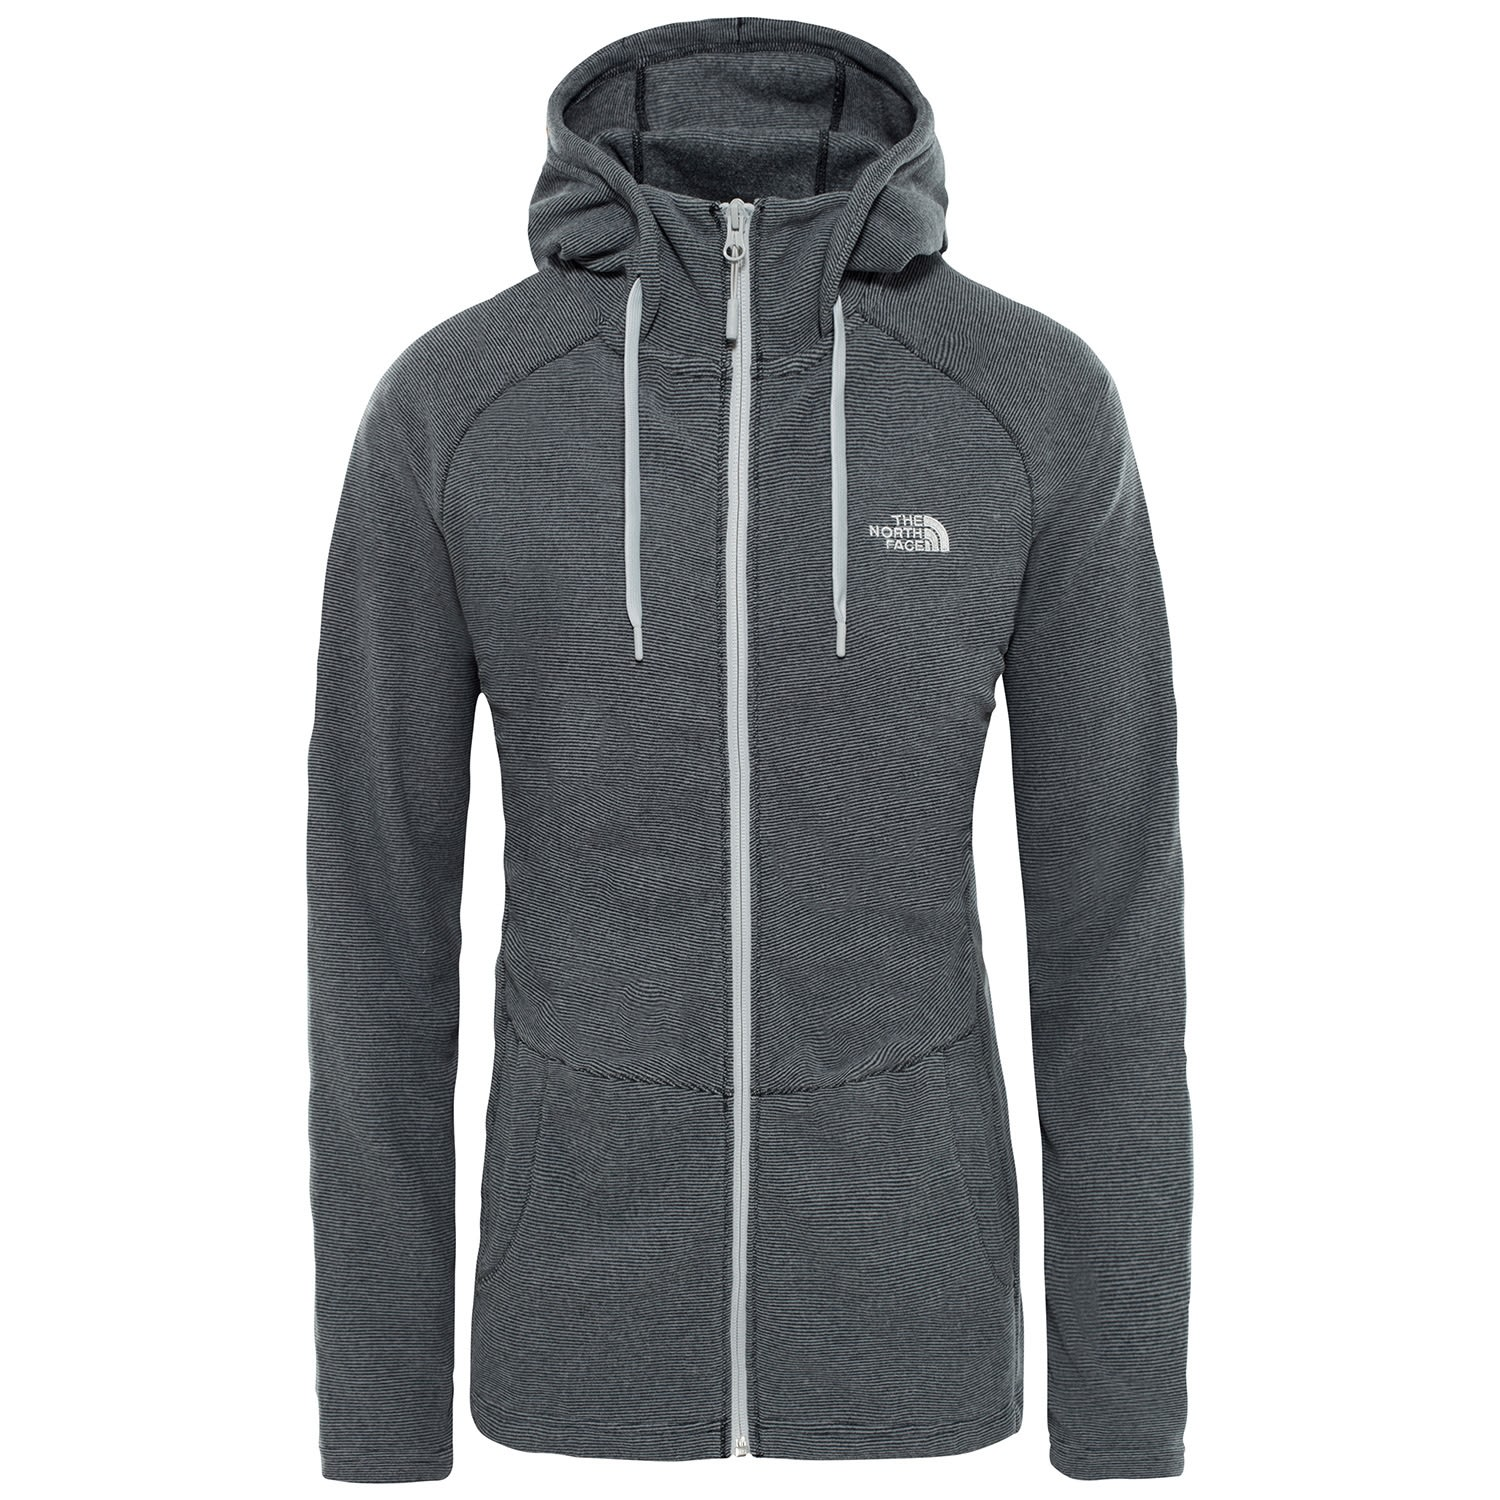 The North Face Women's Mezzaluna Full Zip Fleece Jacket